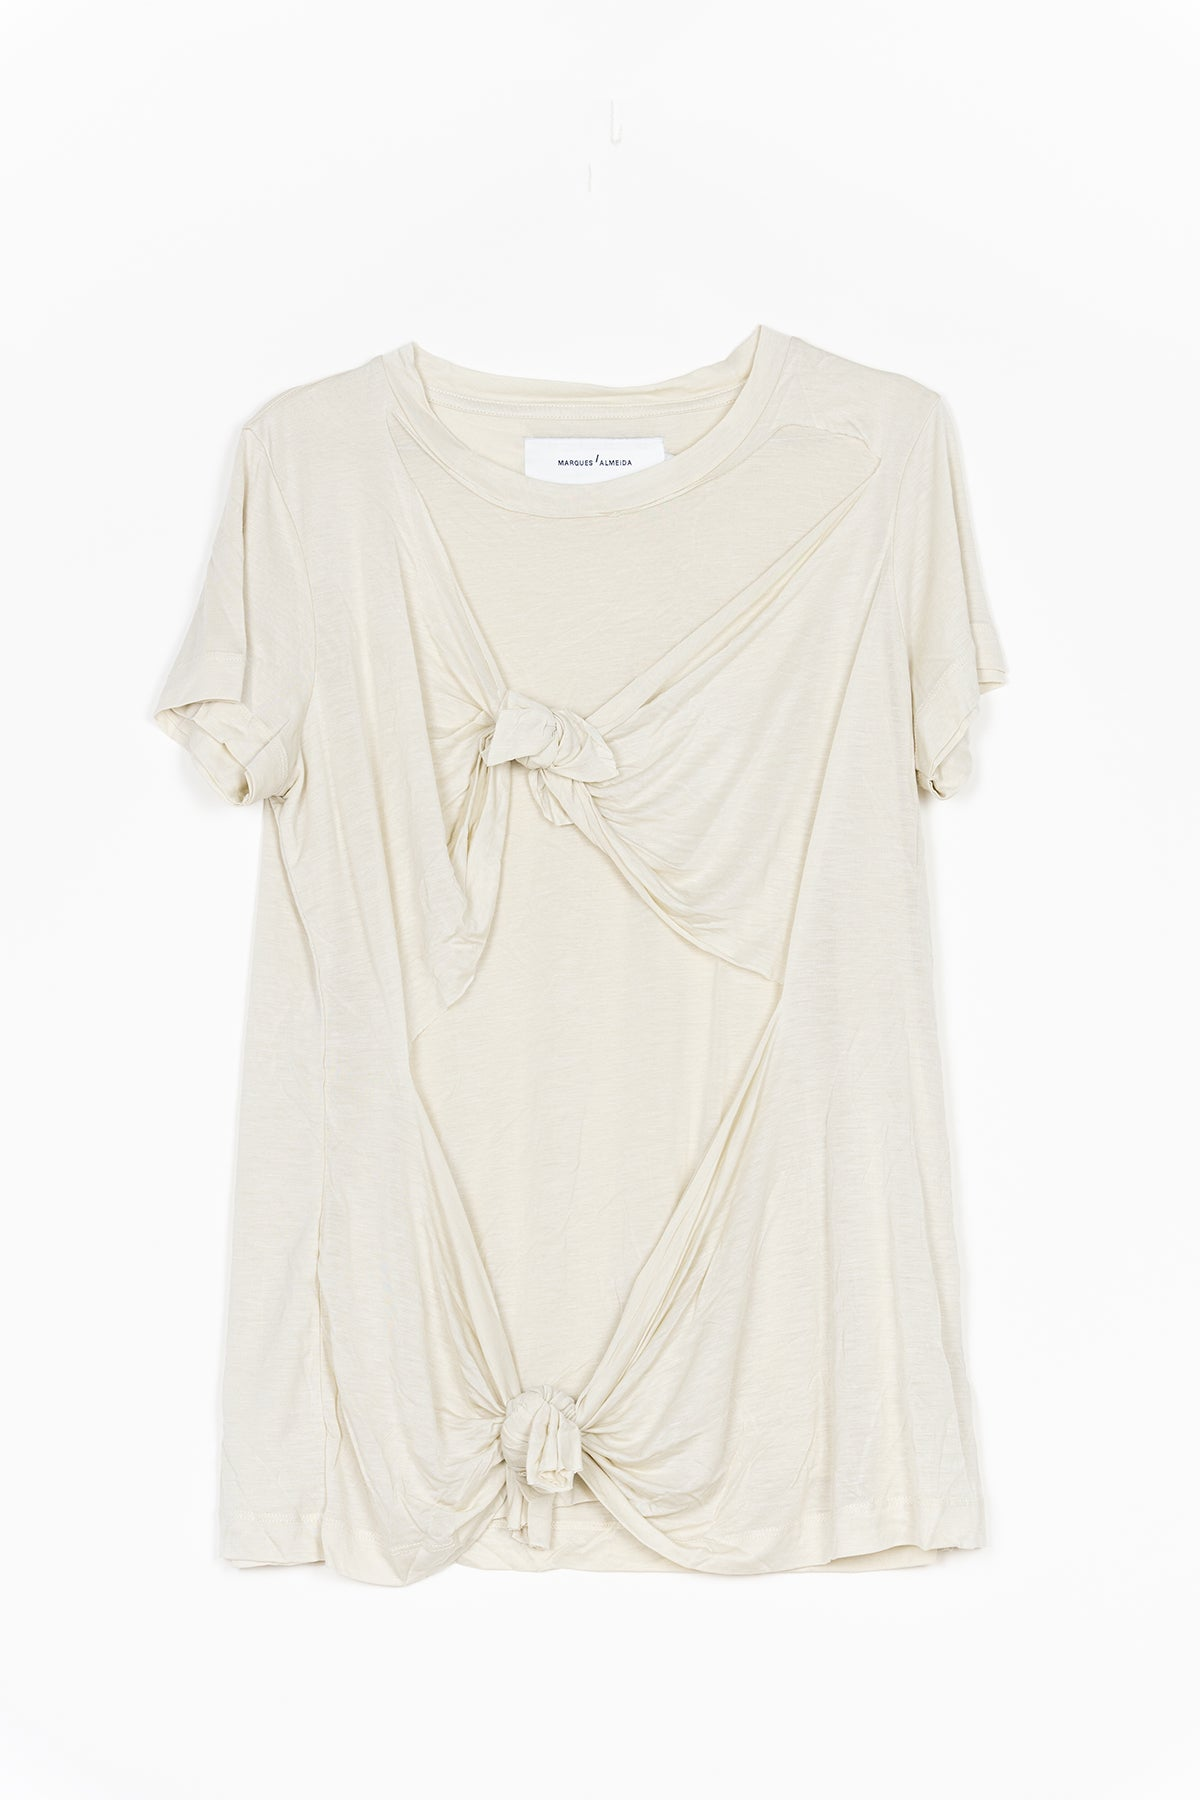 marques almeida BEIGE DOUBLE KNOT T-SHIRT